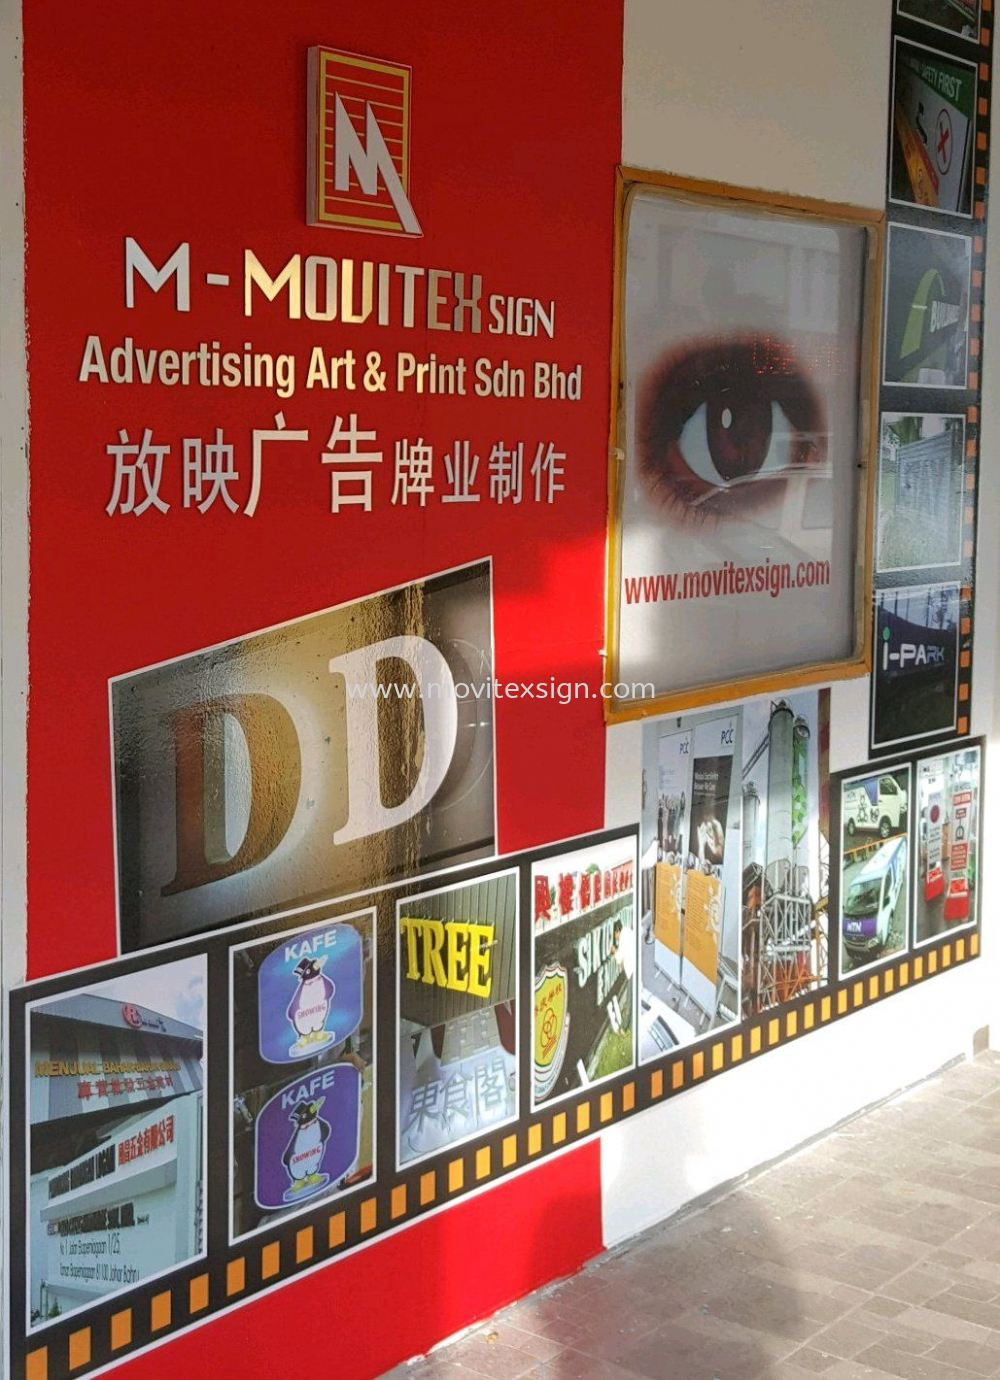 image painting n logo text design (click for more detail) Billboard and Building Signage Johor Bahru (JB), Johor, Malaysia. Design, Supplier, Manufacturers, Suppliers | M-Movitexsign Advertising Art & Print Sdn Bhd